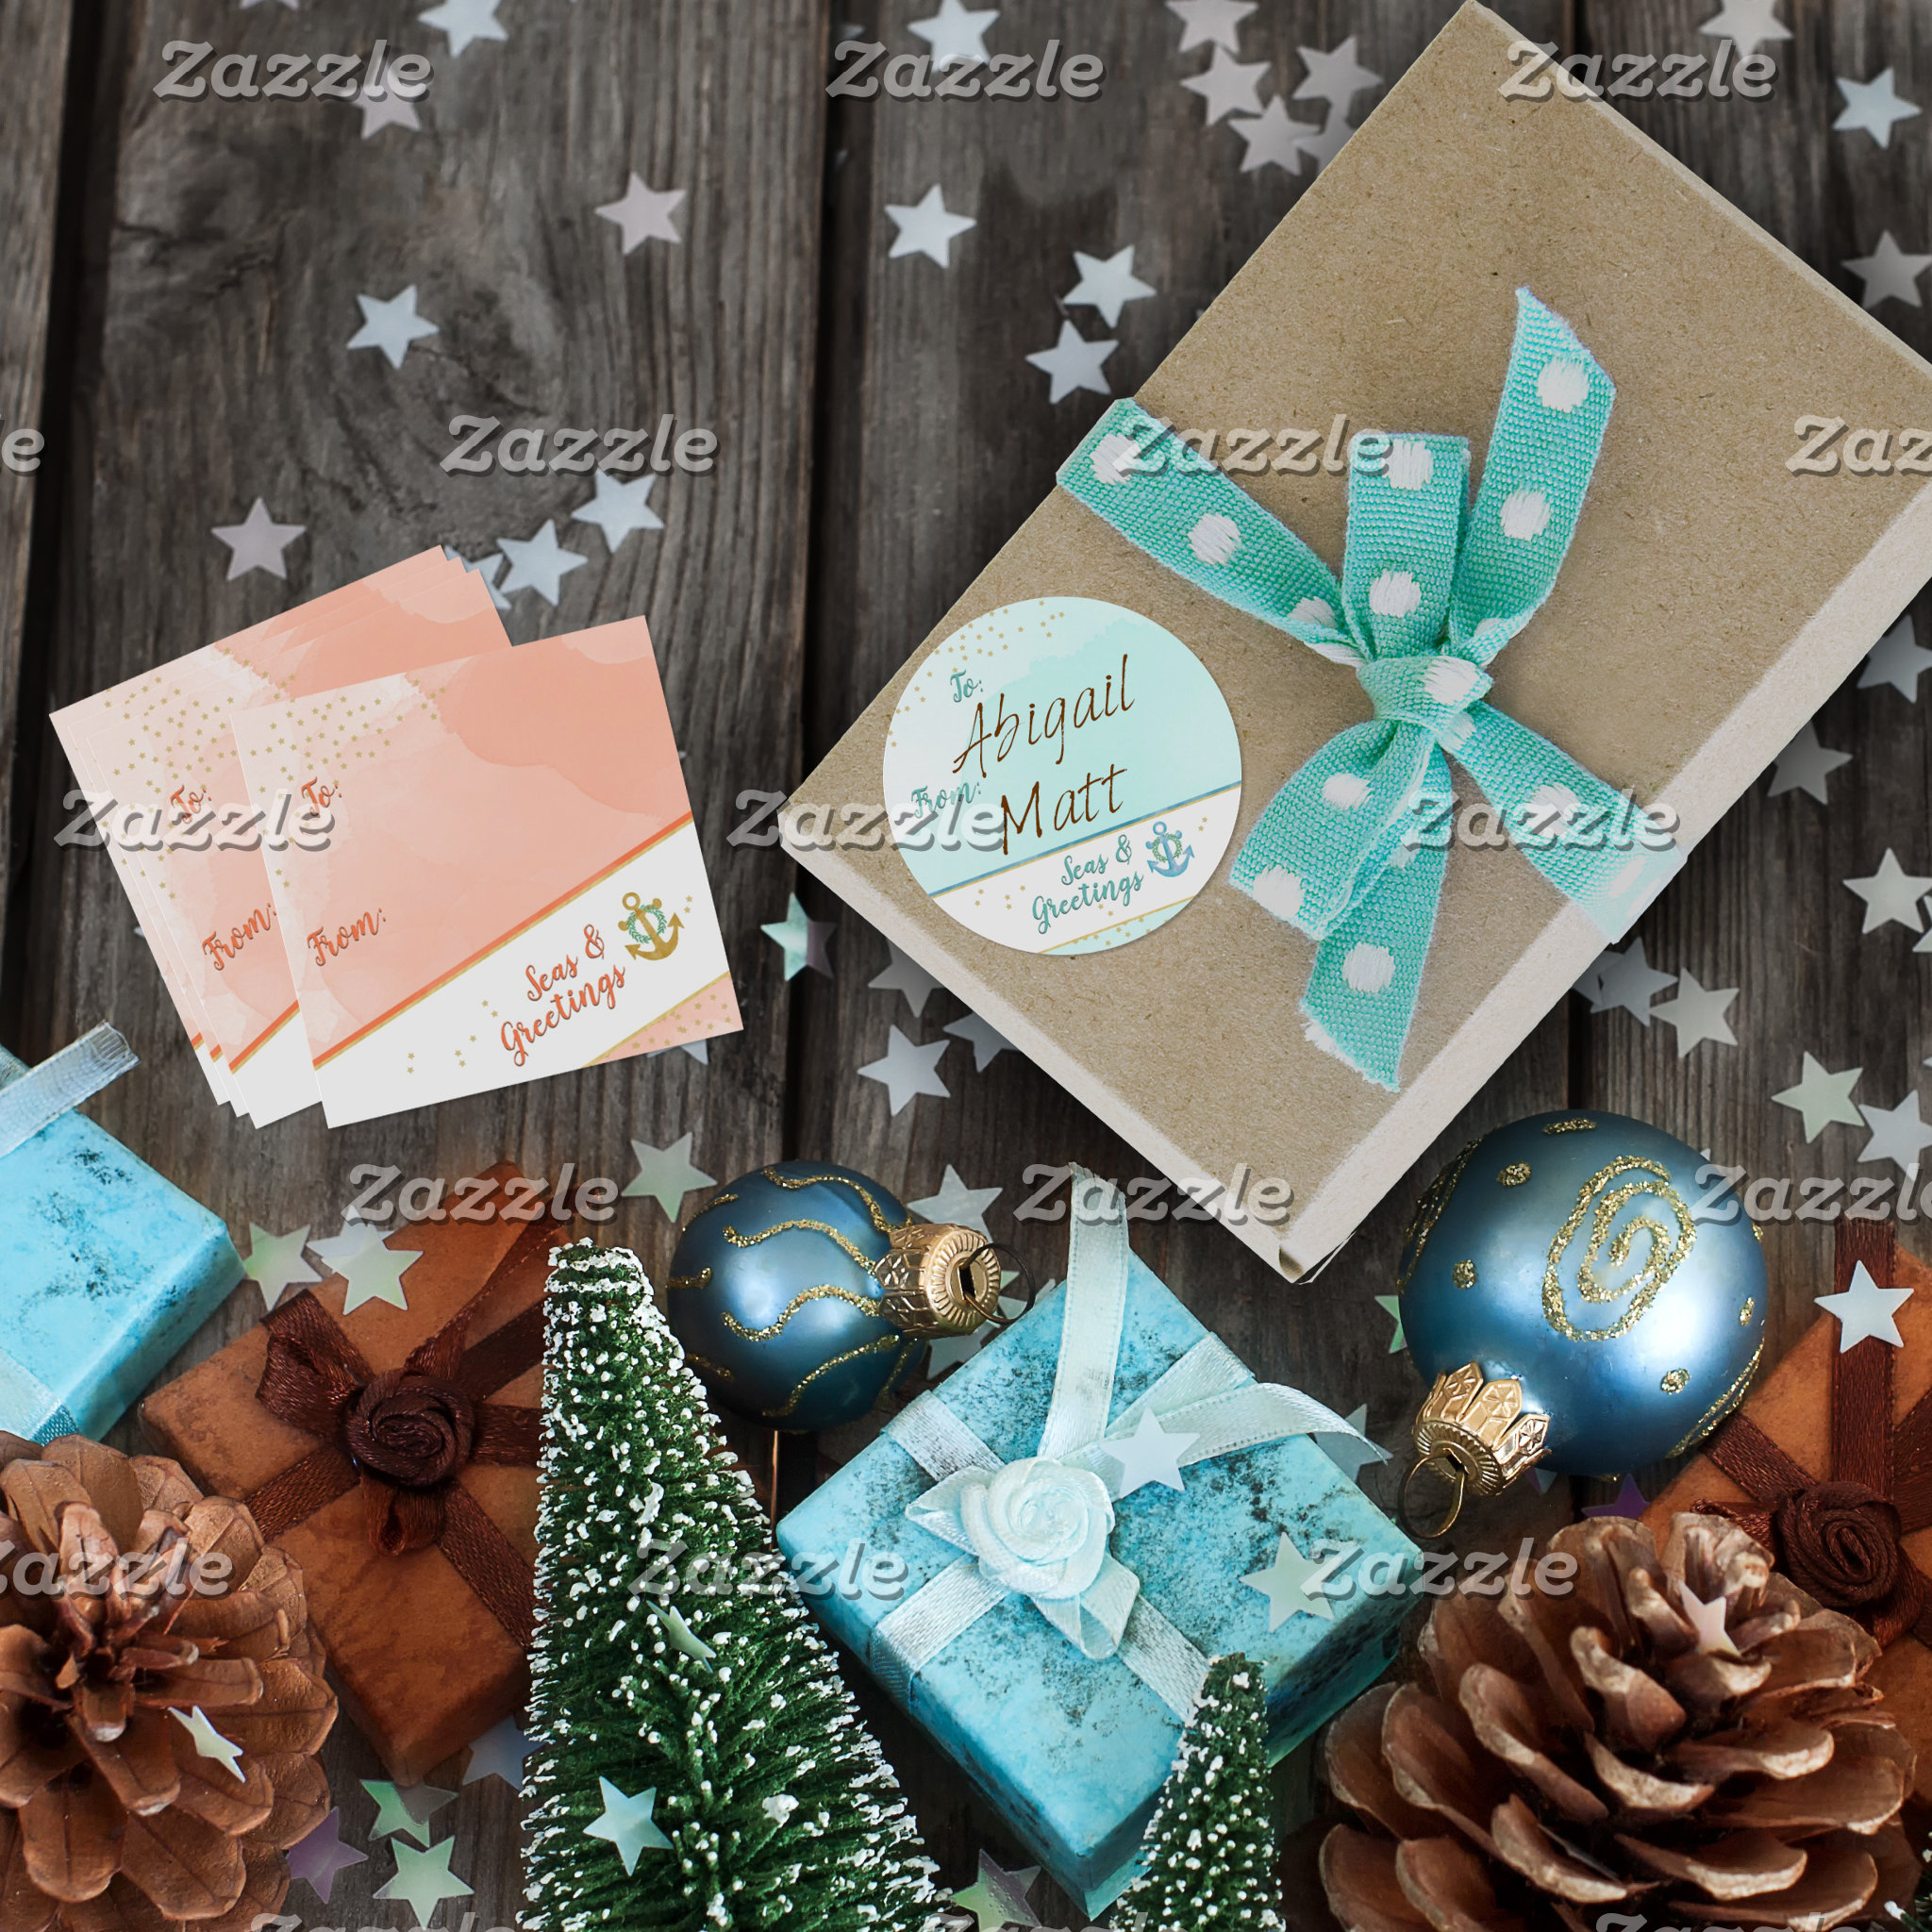 Seas & Greetings Wrapping & Gift Baubles